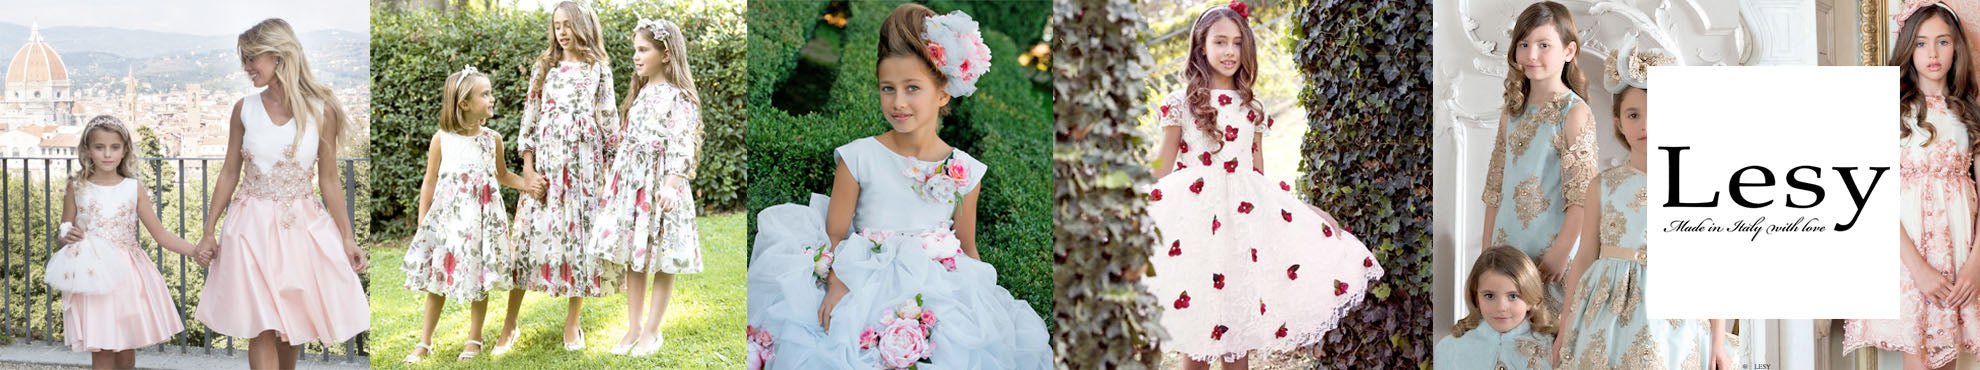 Lesy Dresses Made in Italy - Designer children's clothes online boutique and outlet